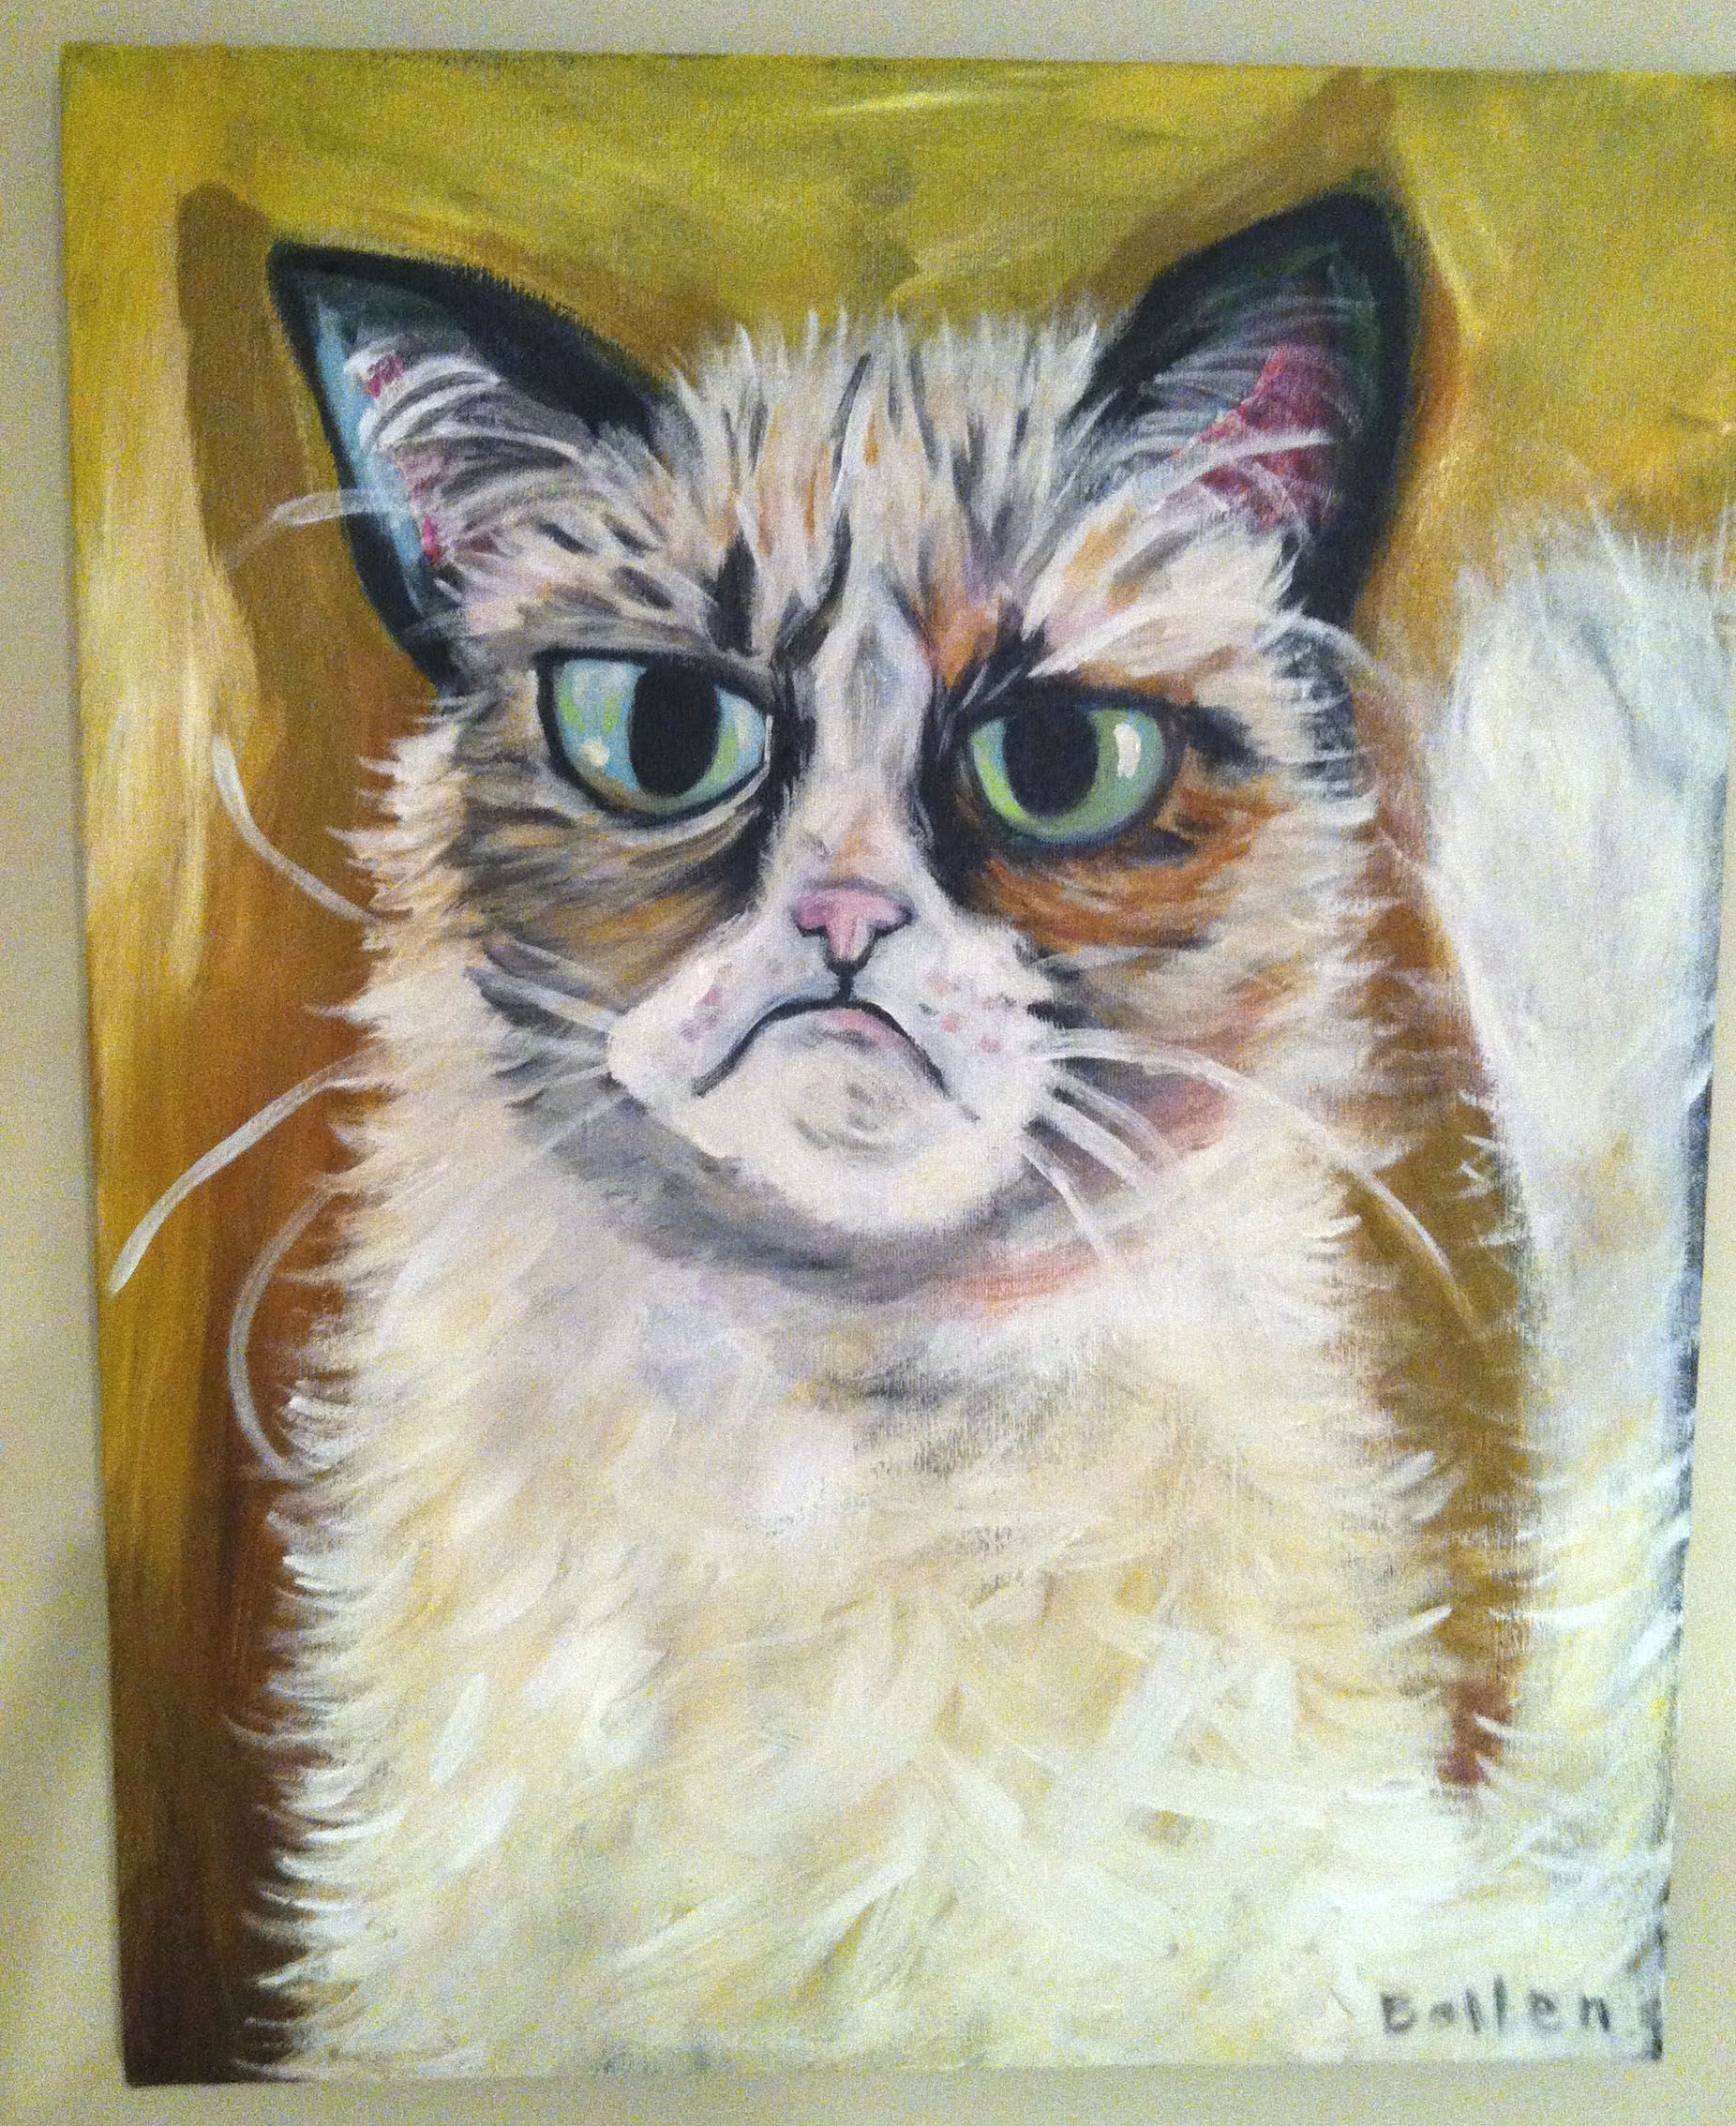 Grumpy Cat, painted by MBollen